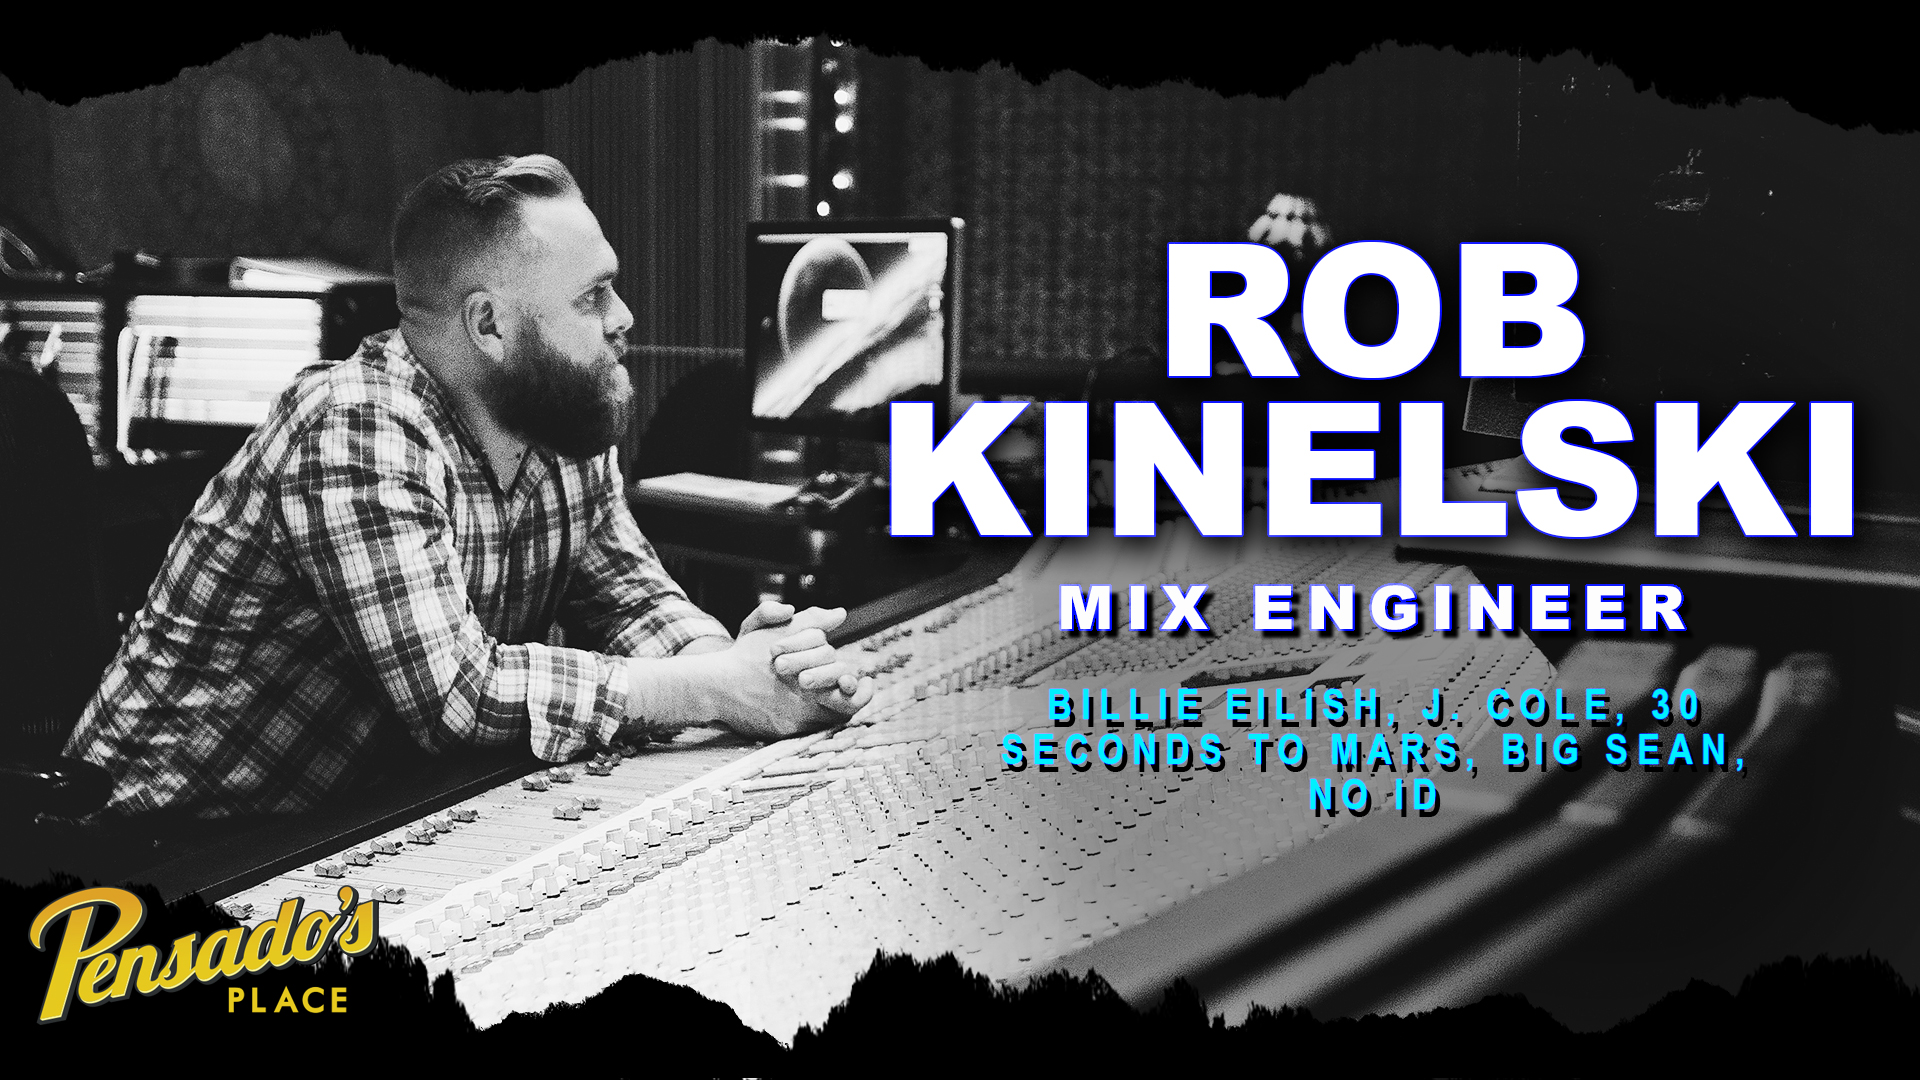 Billie Eilish Mix Engineer, Rob Kinelski